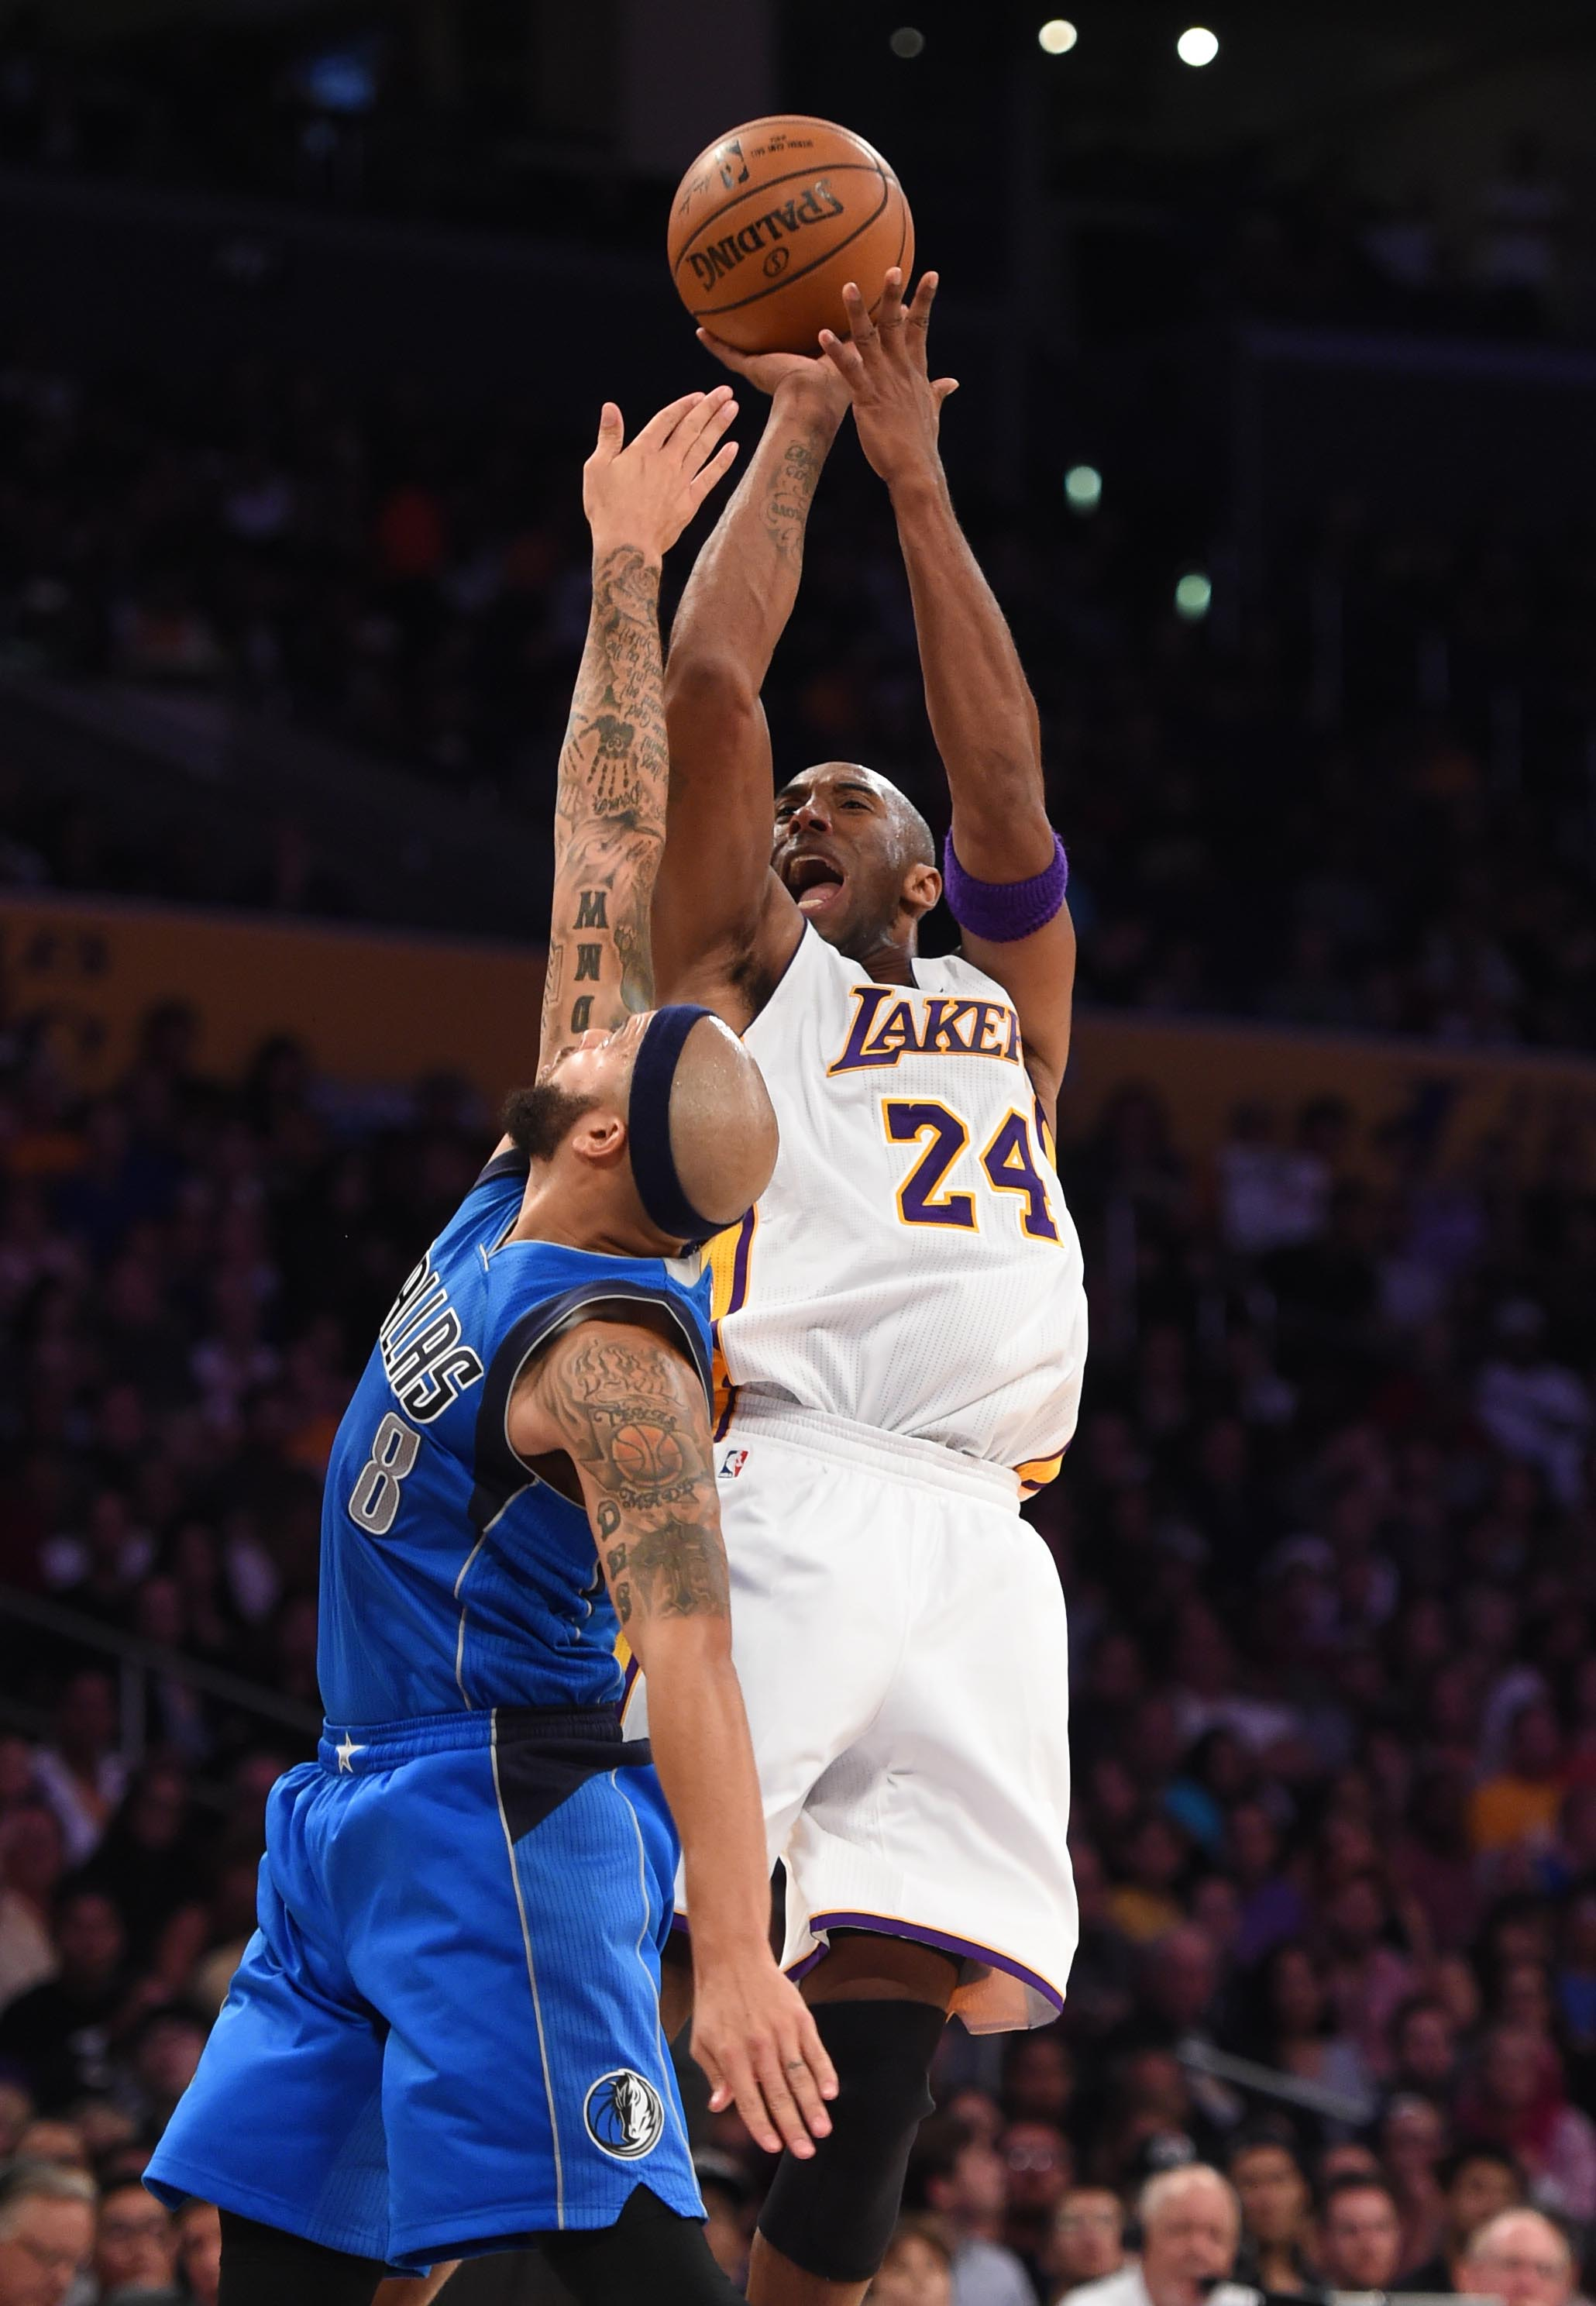 Los Angeles Laker Kobe Bryant,24, against Dallas Mavericks Deron Williams,8, during the 2nd quarter at the Staples Center. Dallas won 103-93.   Los Angeles  Sunday,  November,01, 2015.         (Photo by Stephen Carr / Daily Breeze)